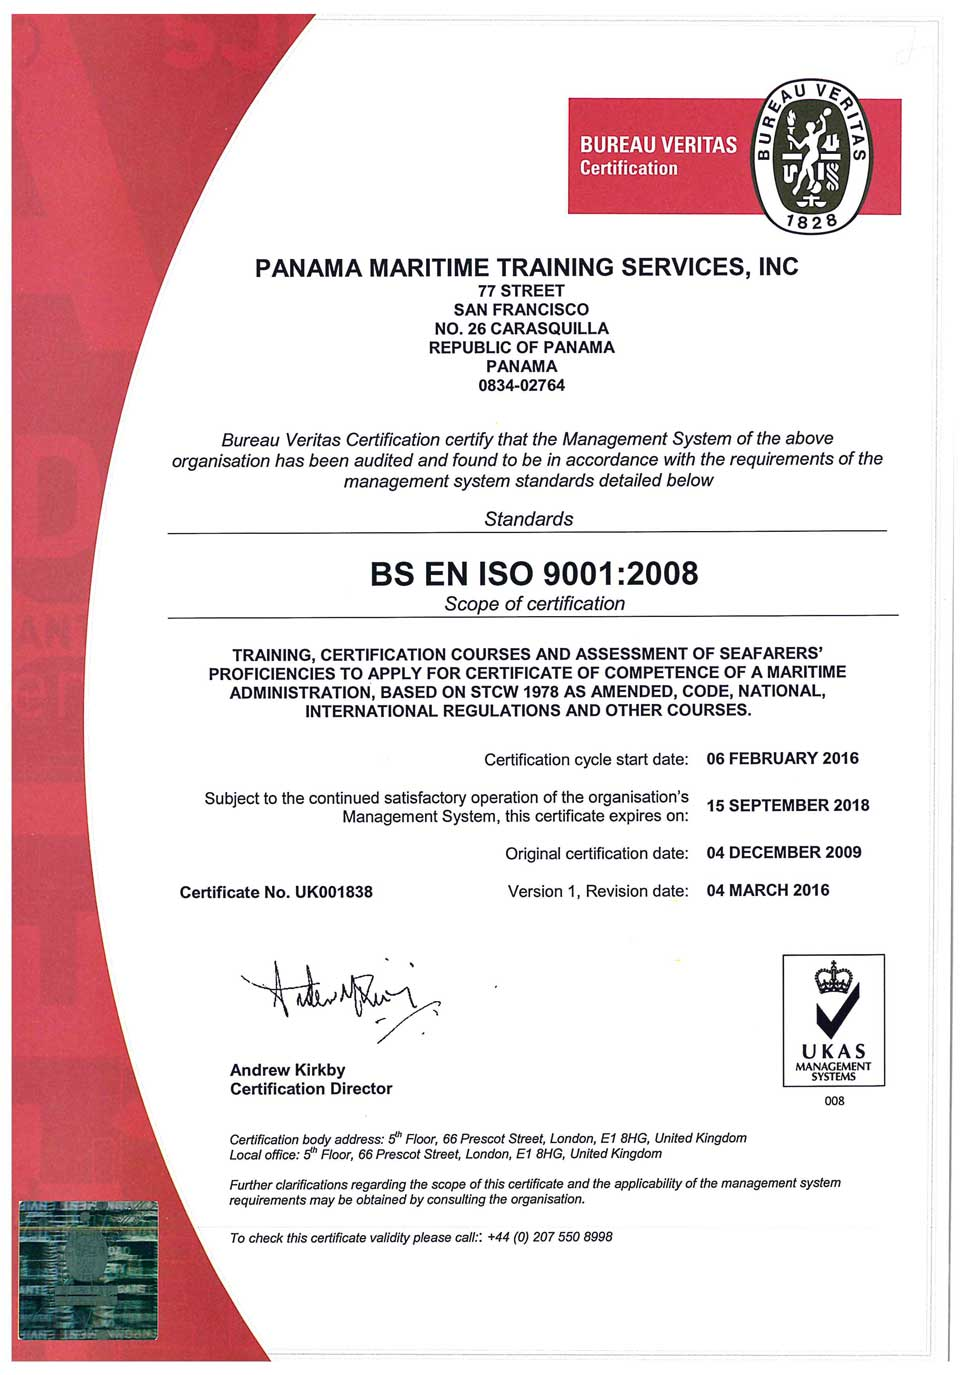 pmts-bureau-veritas-2016-2017-certification